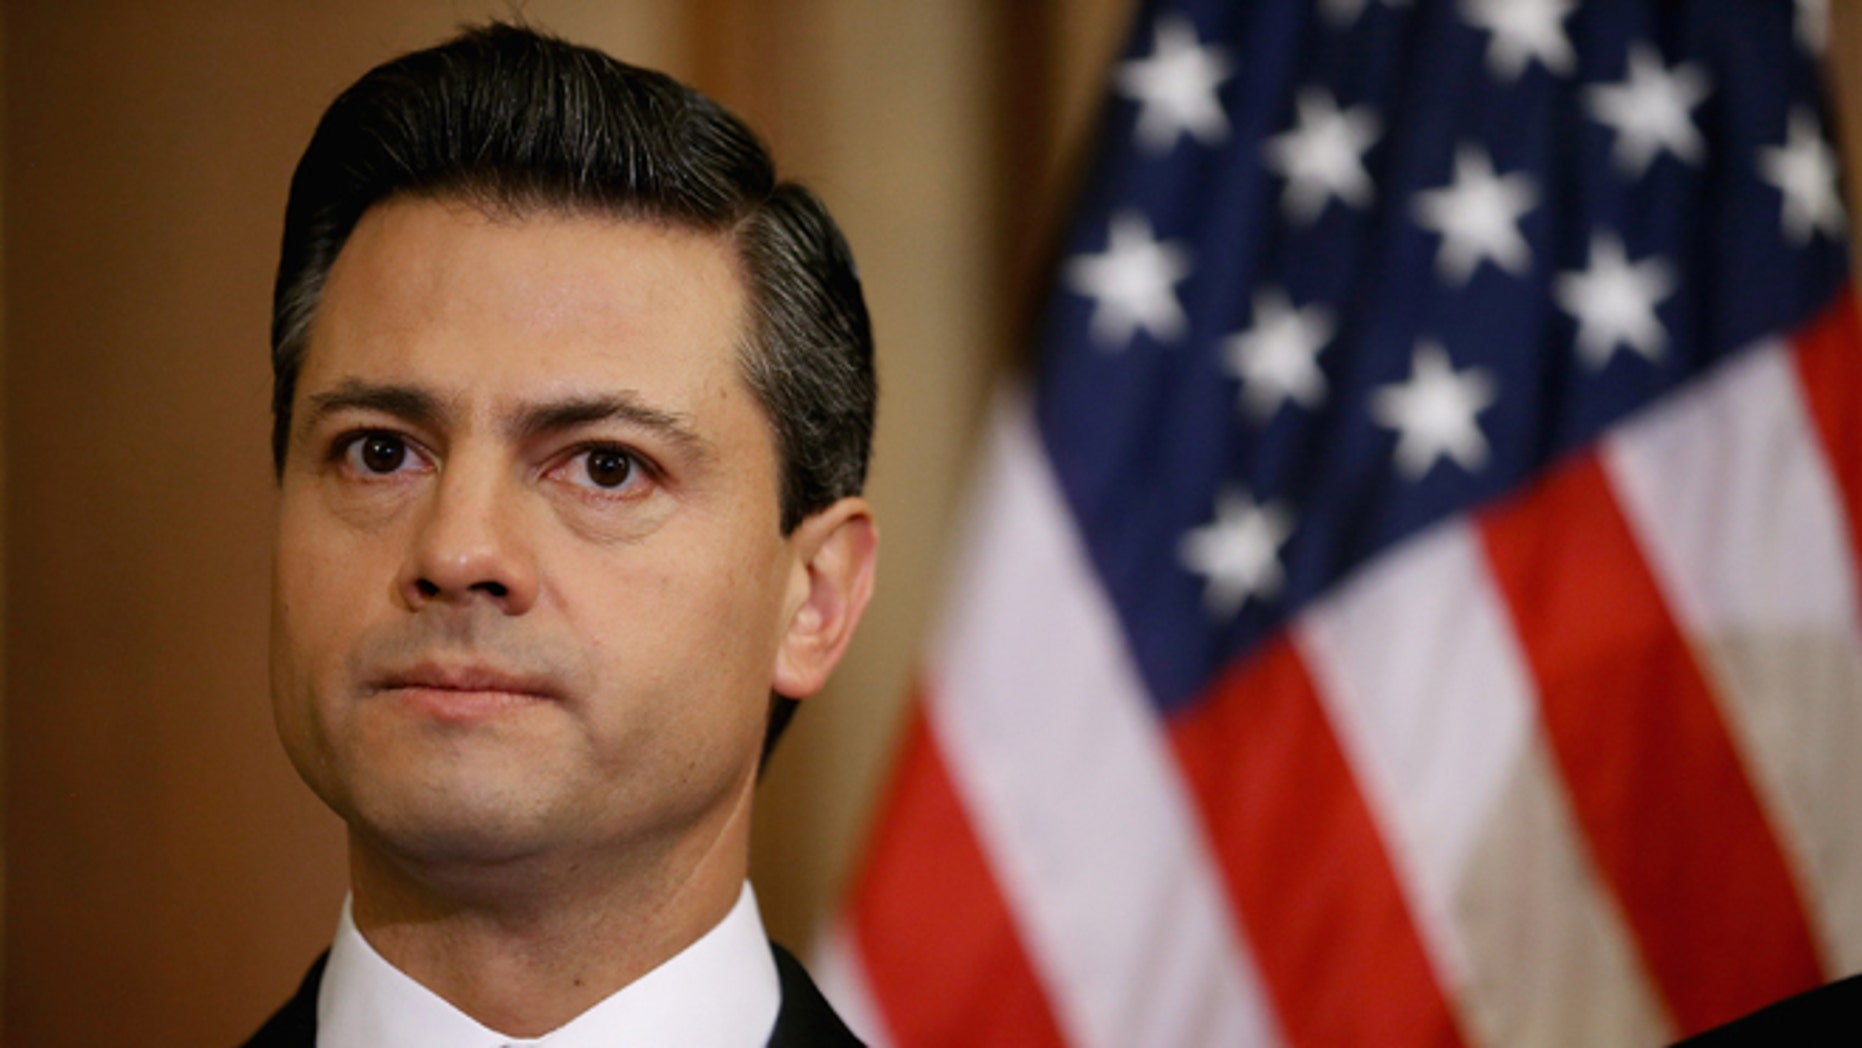 WASHINGTON, DC - NOVEMBER 27:  Mexican President-Elect Enrique Pena Nieto delivers brief remarks after meeting with Democratic members of the House in the Rayburn Room at the U.S. Capitol November 27, 2012 in Washington, DC. Nieto, of Mexico's Institutional Revolutionary Party, will also visit the White House and meet with President Barack Obama today, days before he takes office on December 1.  (Photo by Chip Somodevilla/Getty Images)